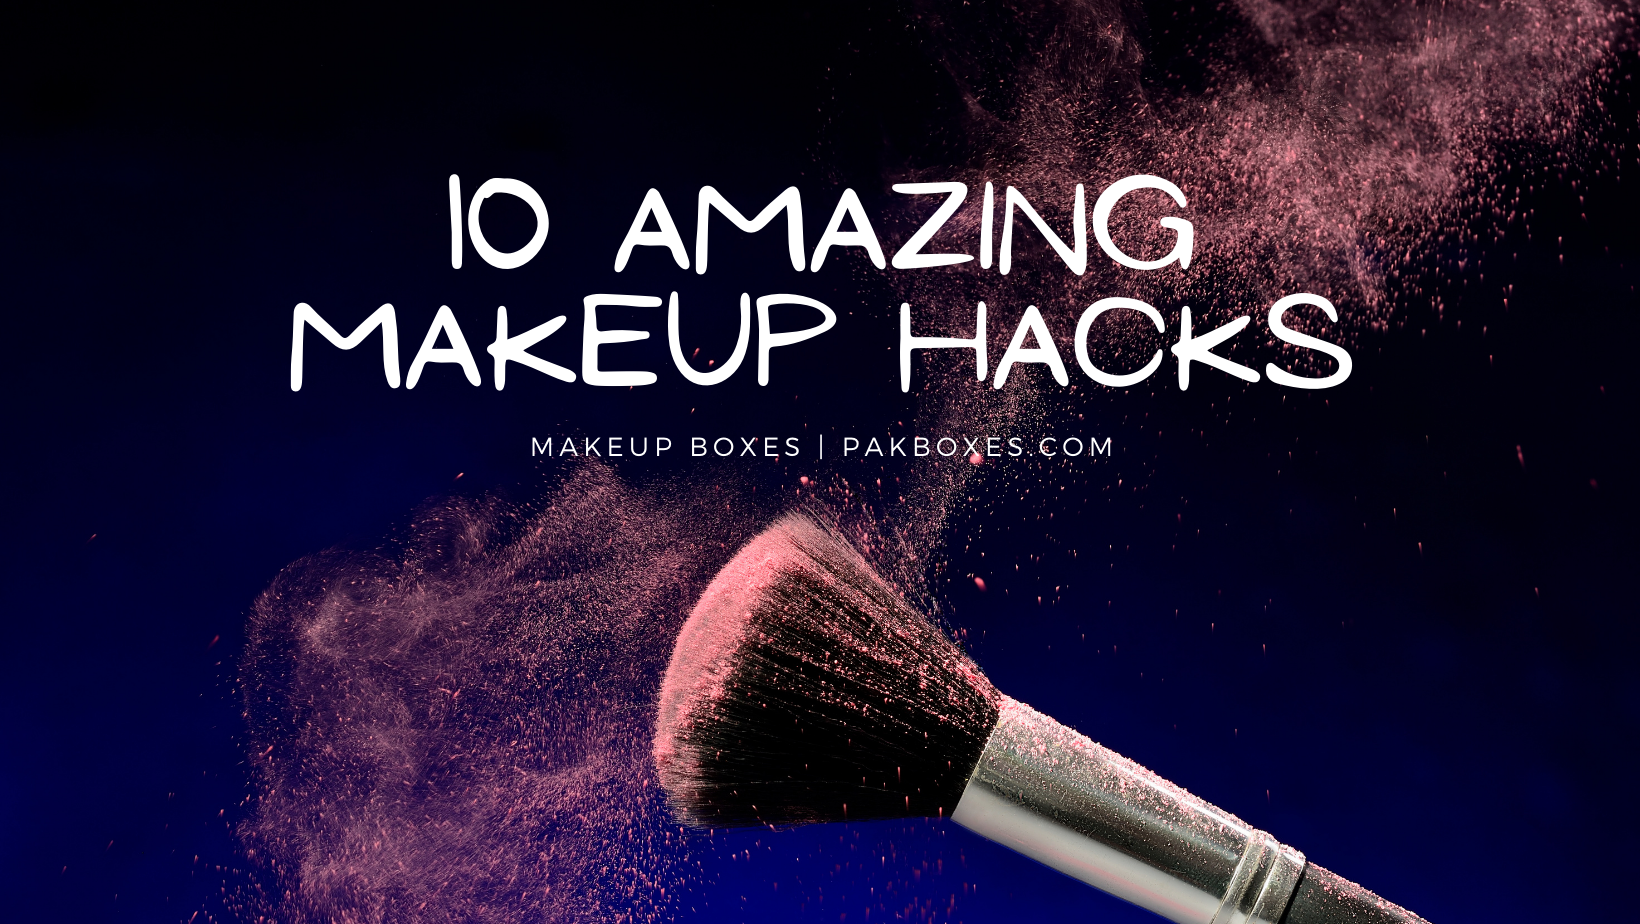 10 Amazing makeup hacks